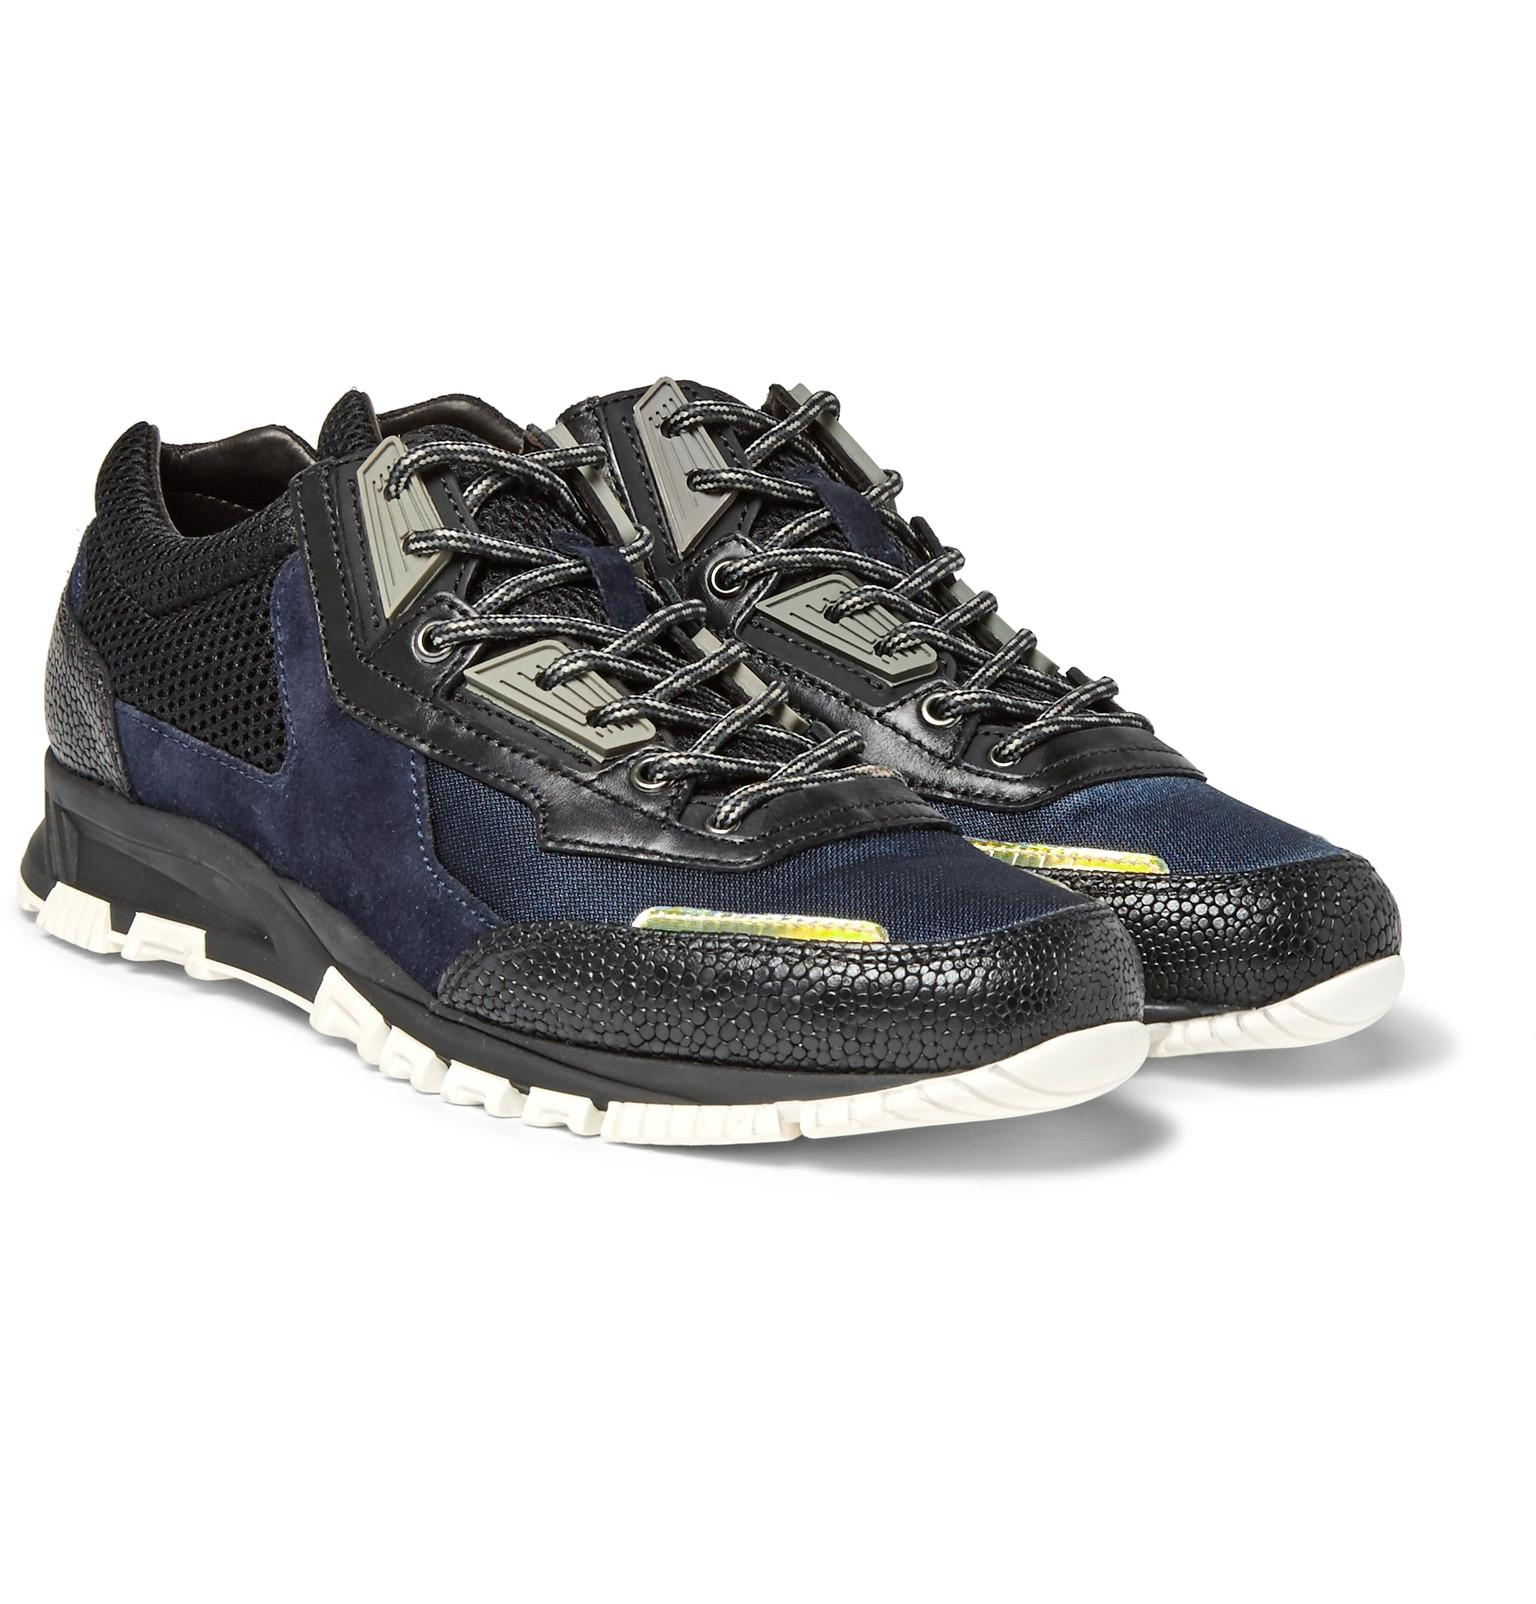 Sneakers Leather Lanvin Suede Mesh Navy Textured And Rrndqh7yw nwYq5vE5